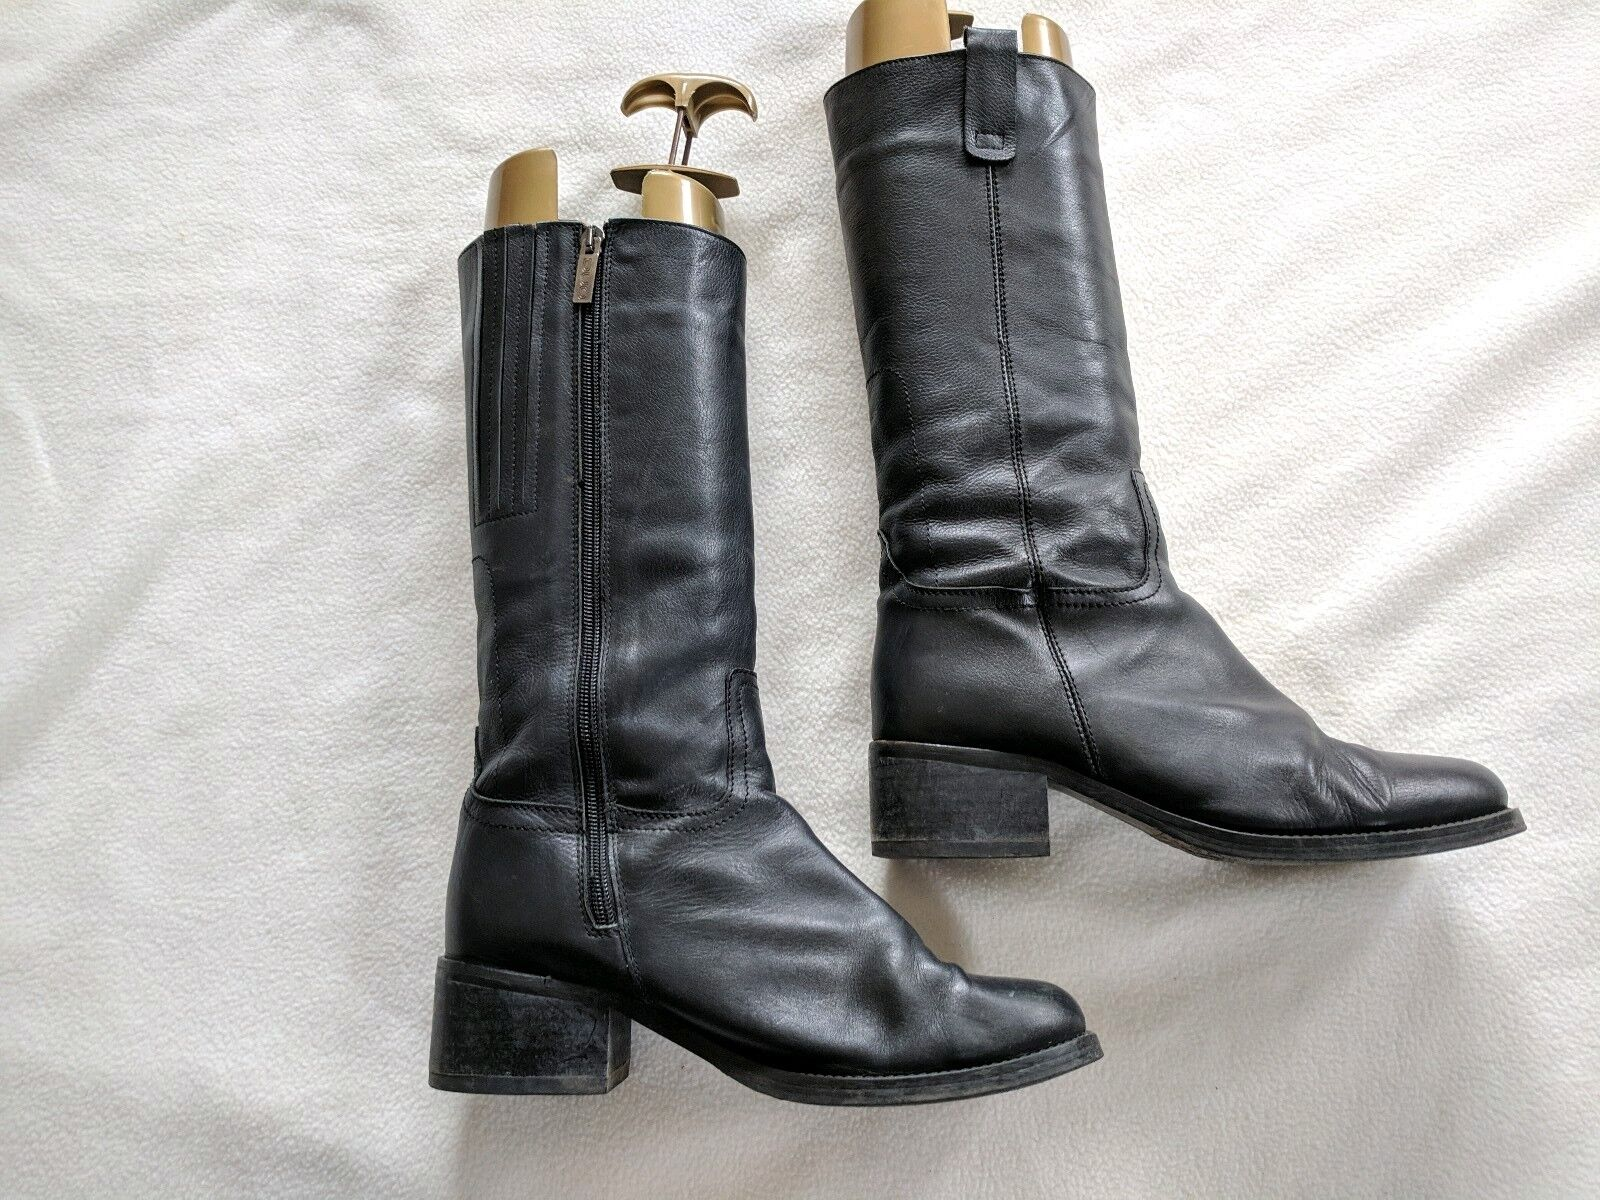 DUO Narrow Black Leather Mid Calf Boots with Fleece Lining, Size 38D